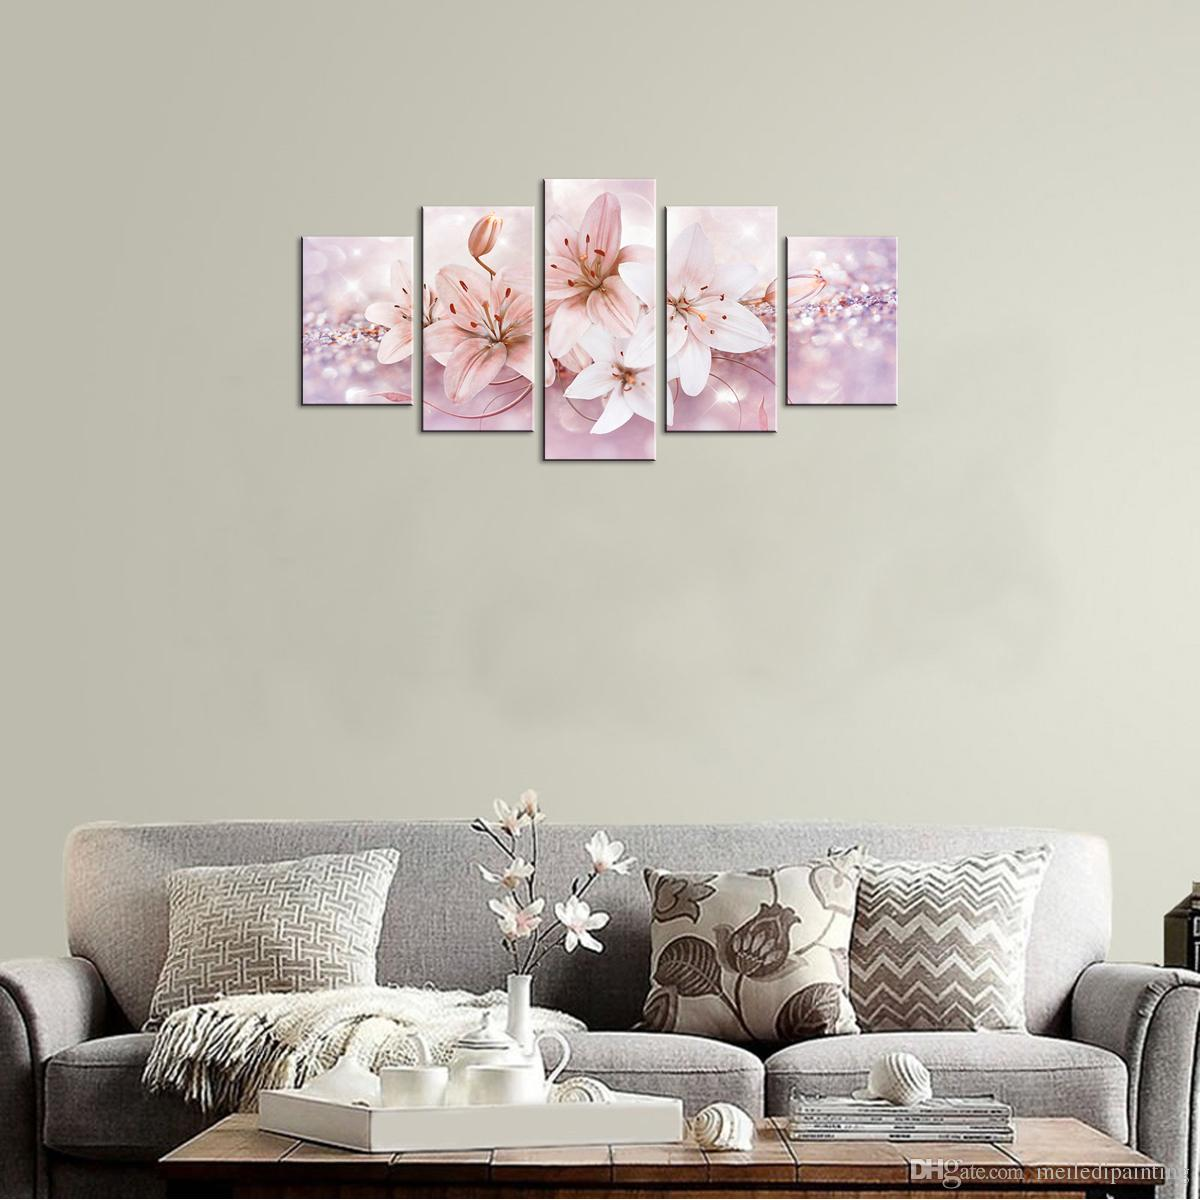 Lily Flower Wall Art Painting Starlight Background Picture Fashion Contemporary Wall Art For Home Decor with Wooden Framed